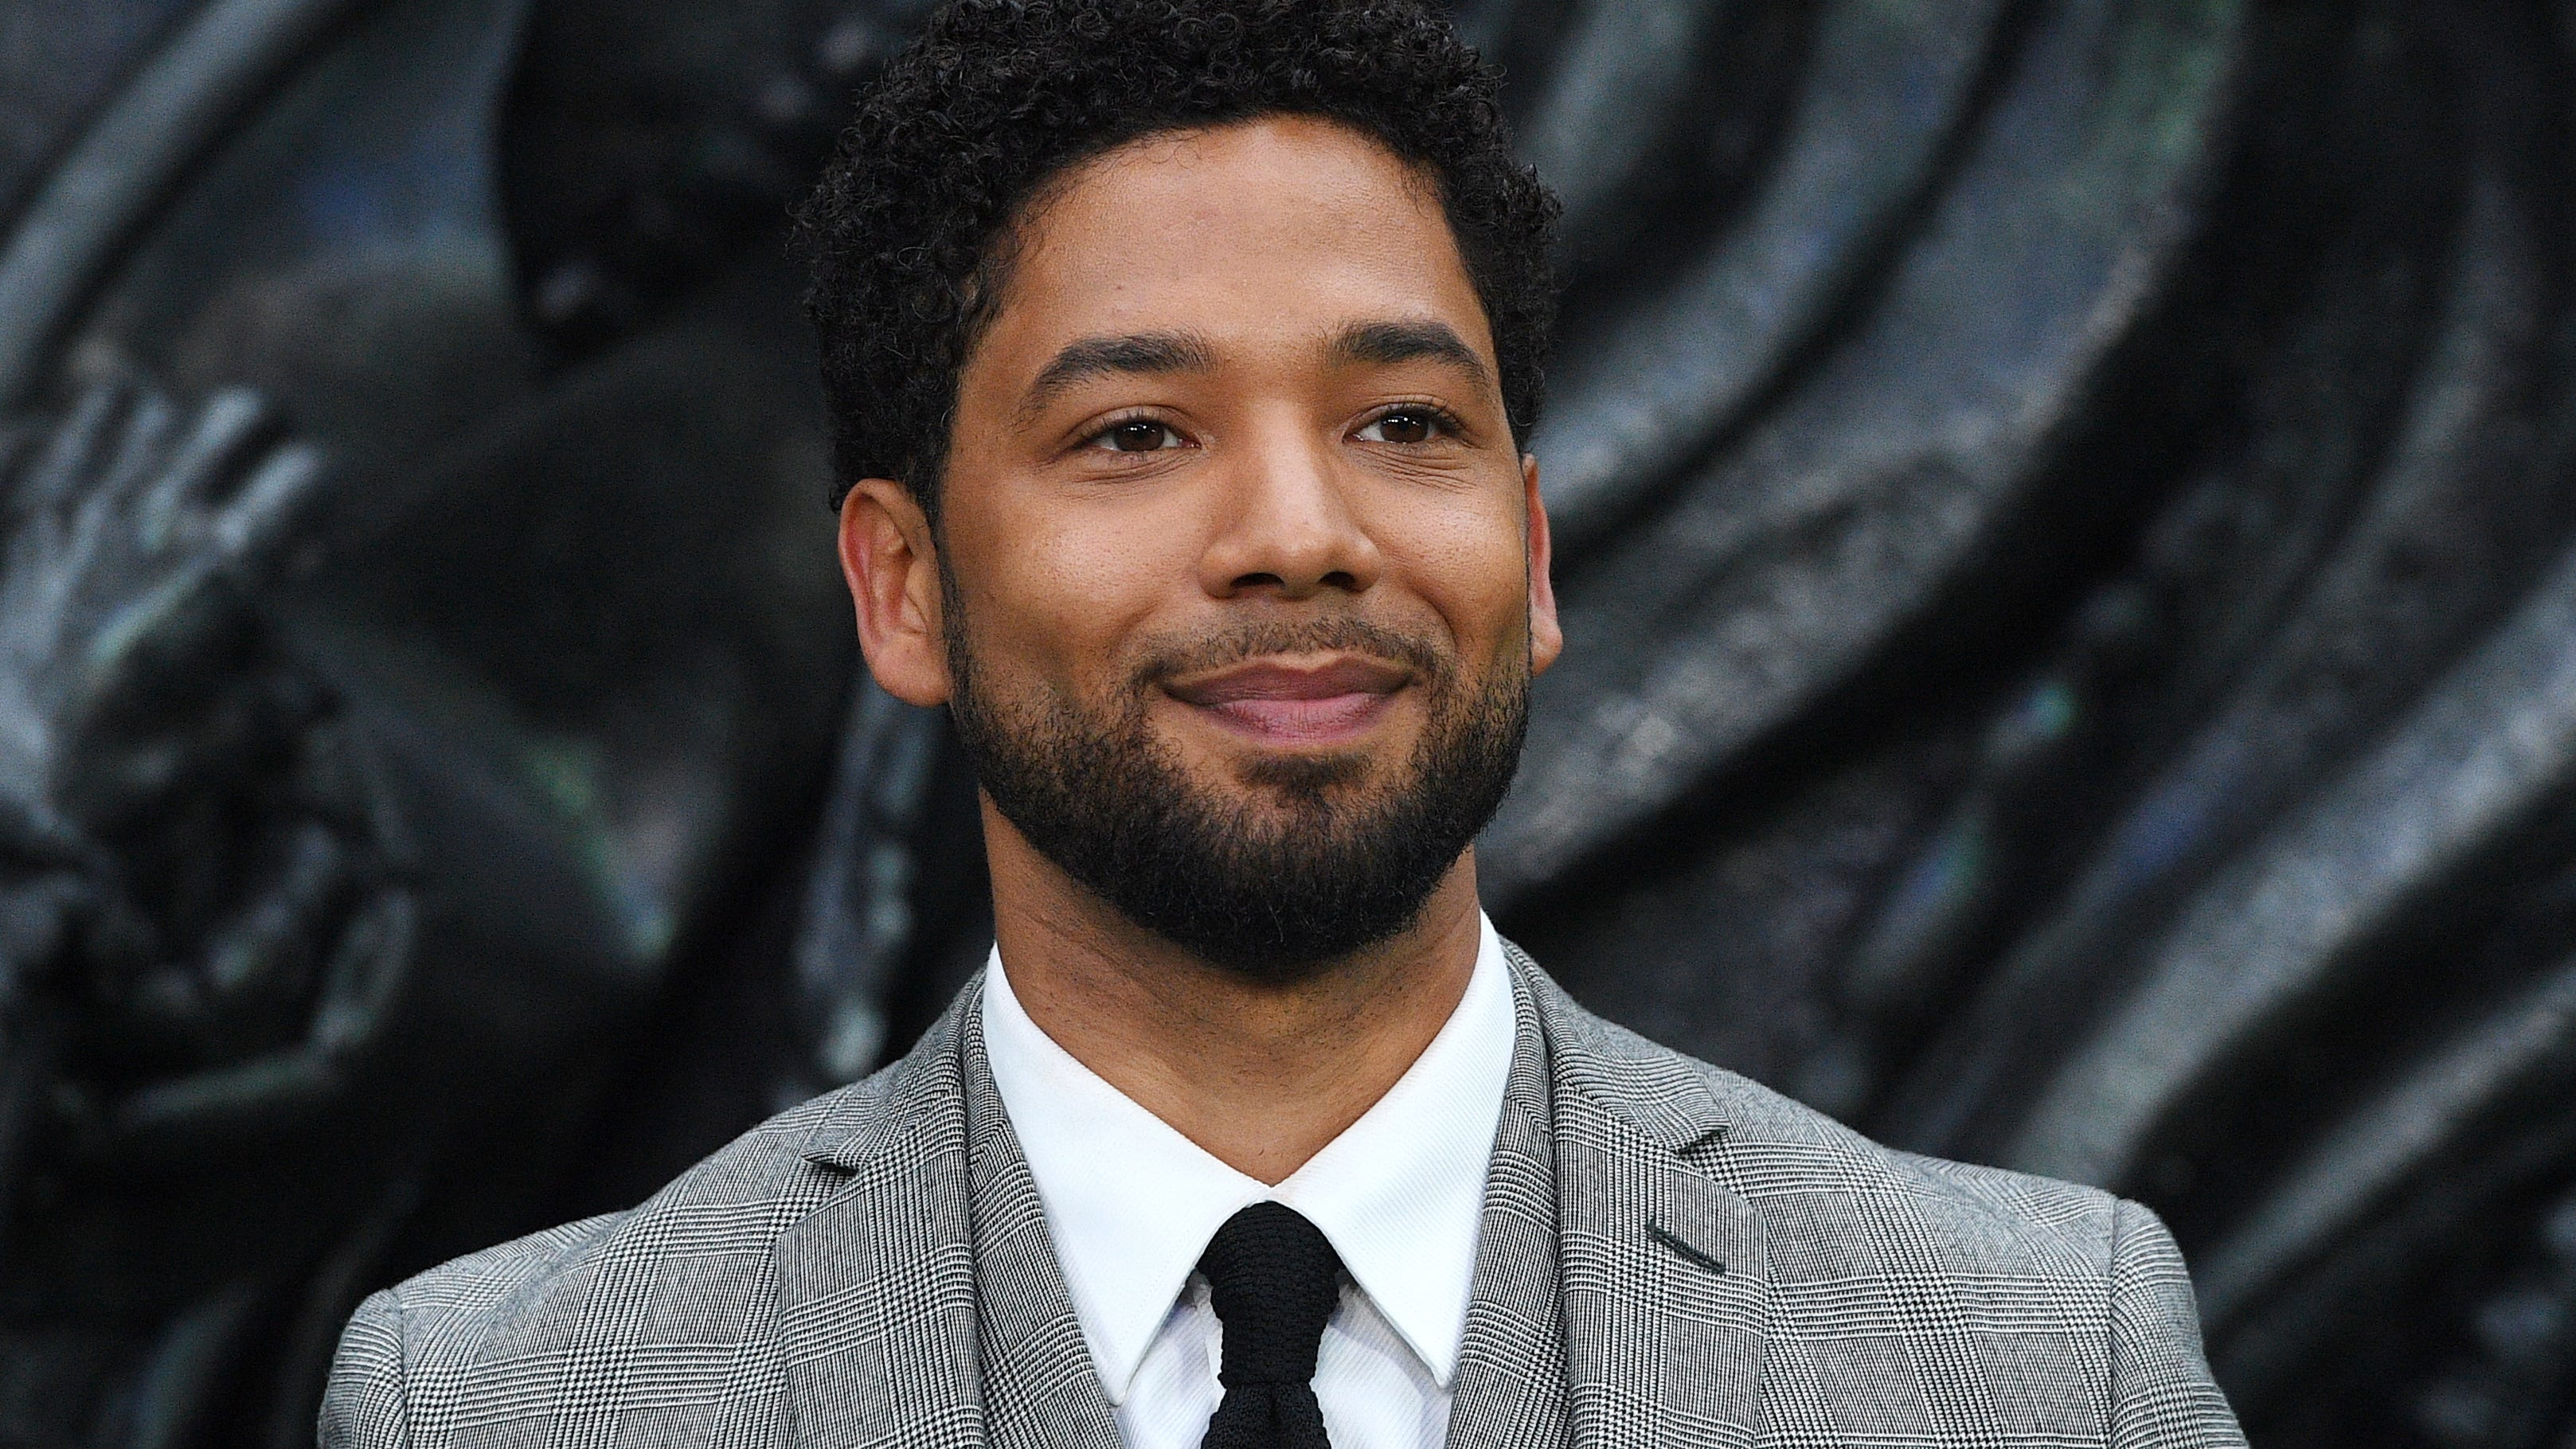 The Chicago Police Department's investigation of Jussie Smollett's alleged Jan. 29 attack took some interesting turns over the weekend.